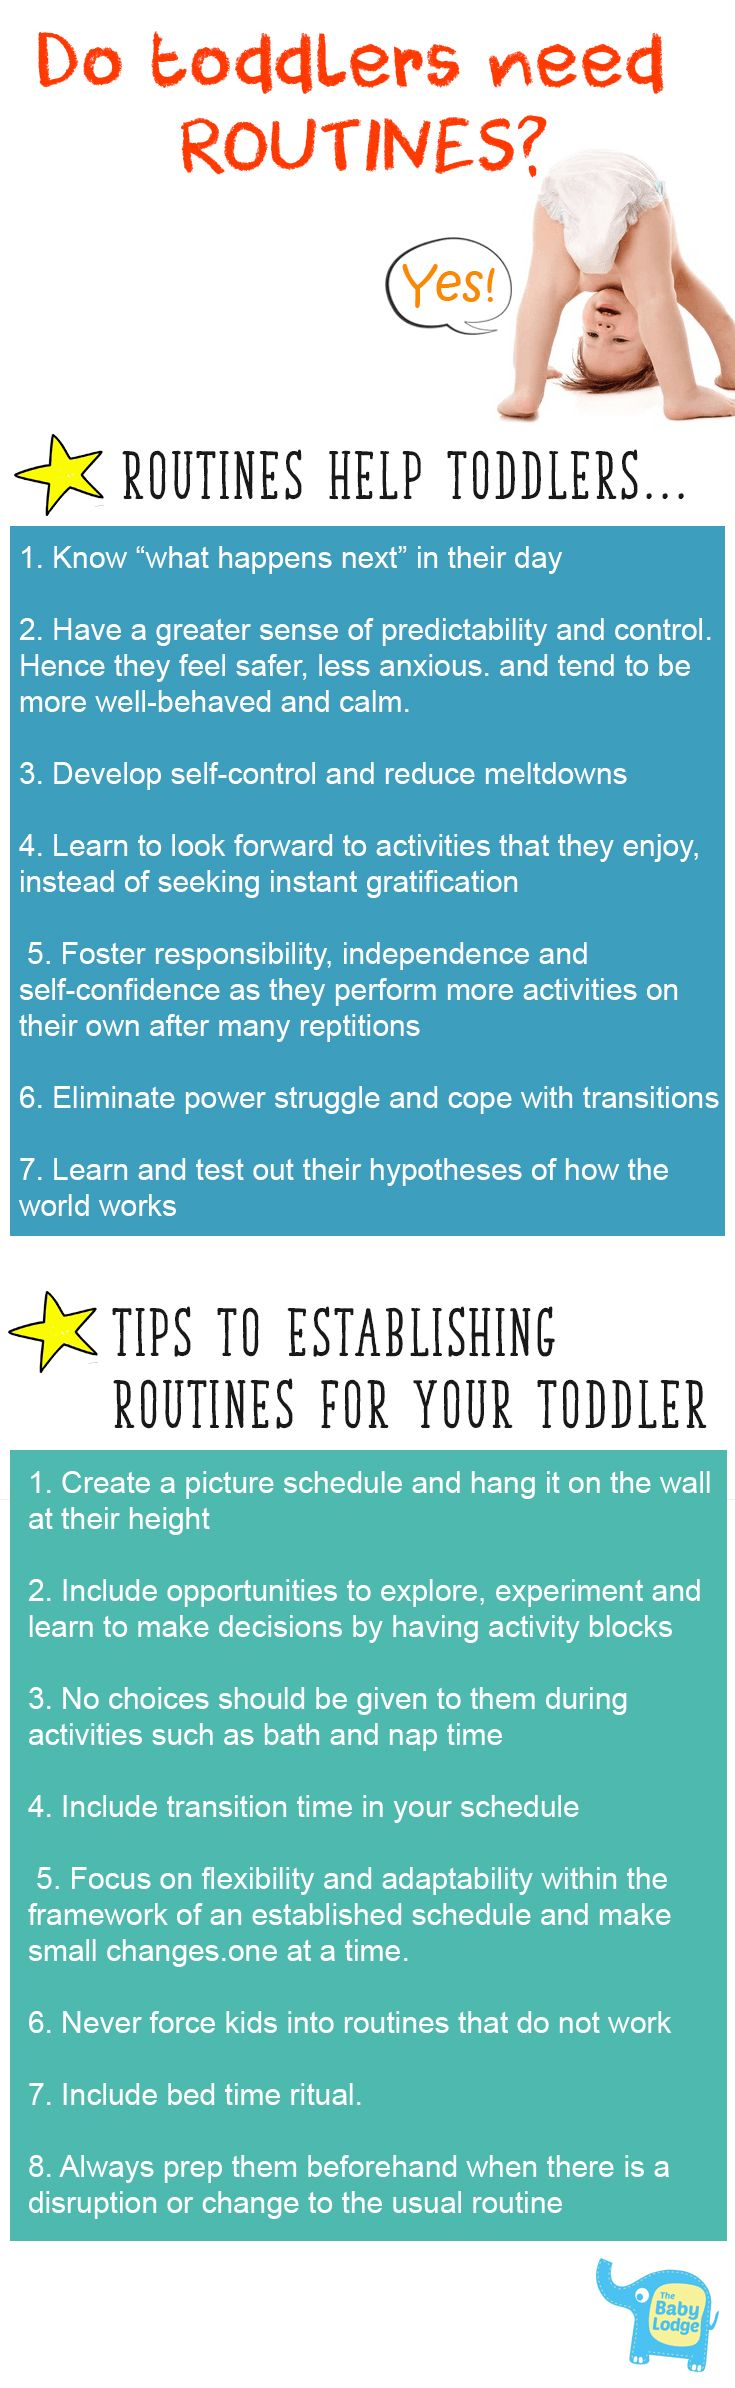 Do Toddlers Need Routines Infographic